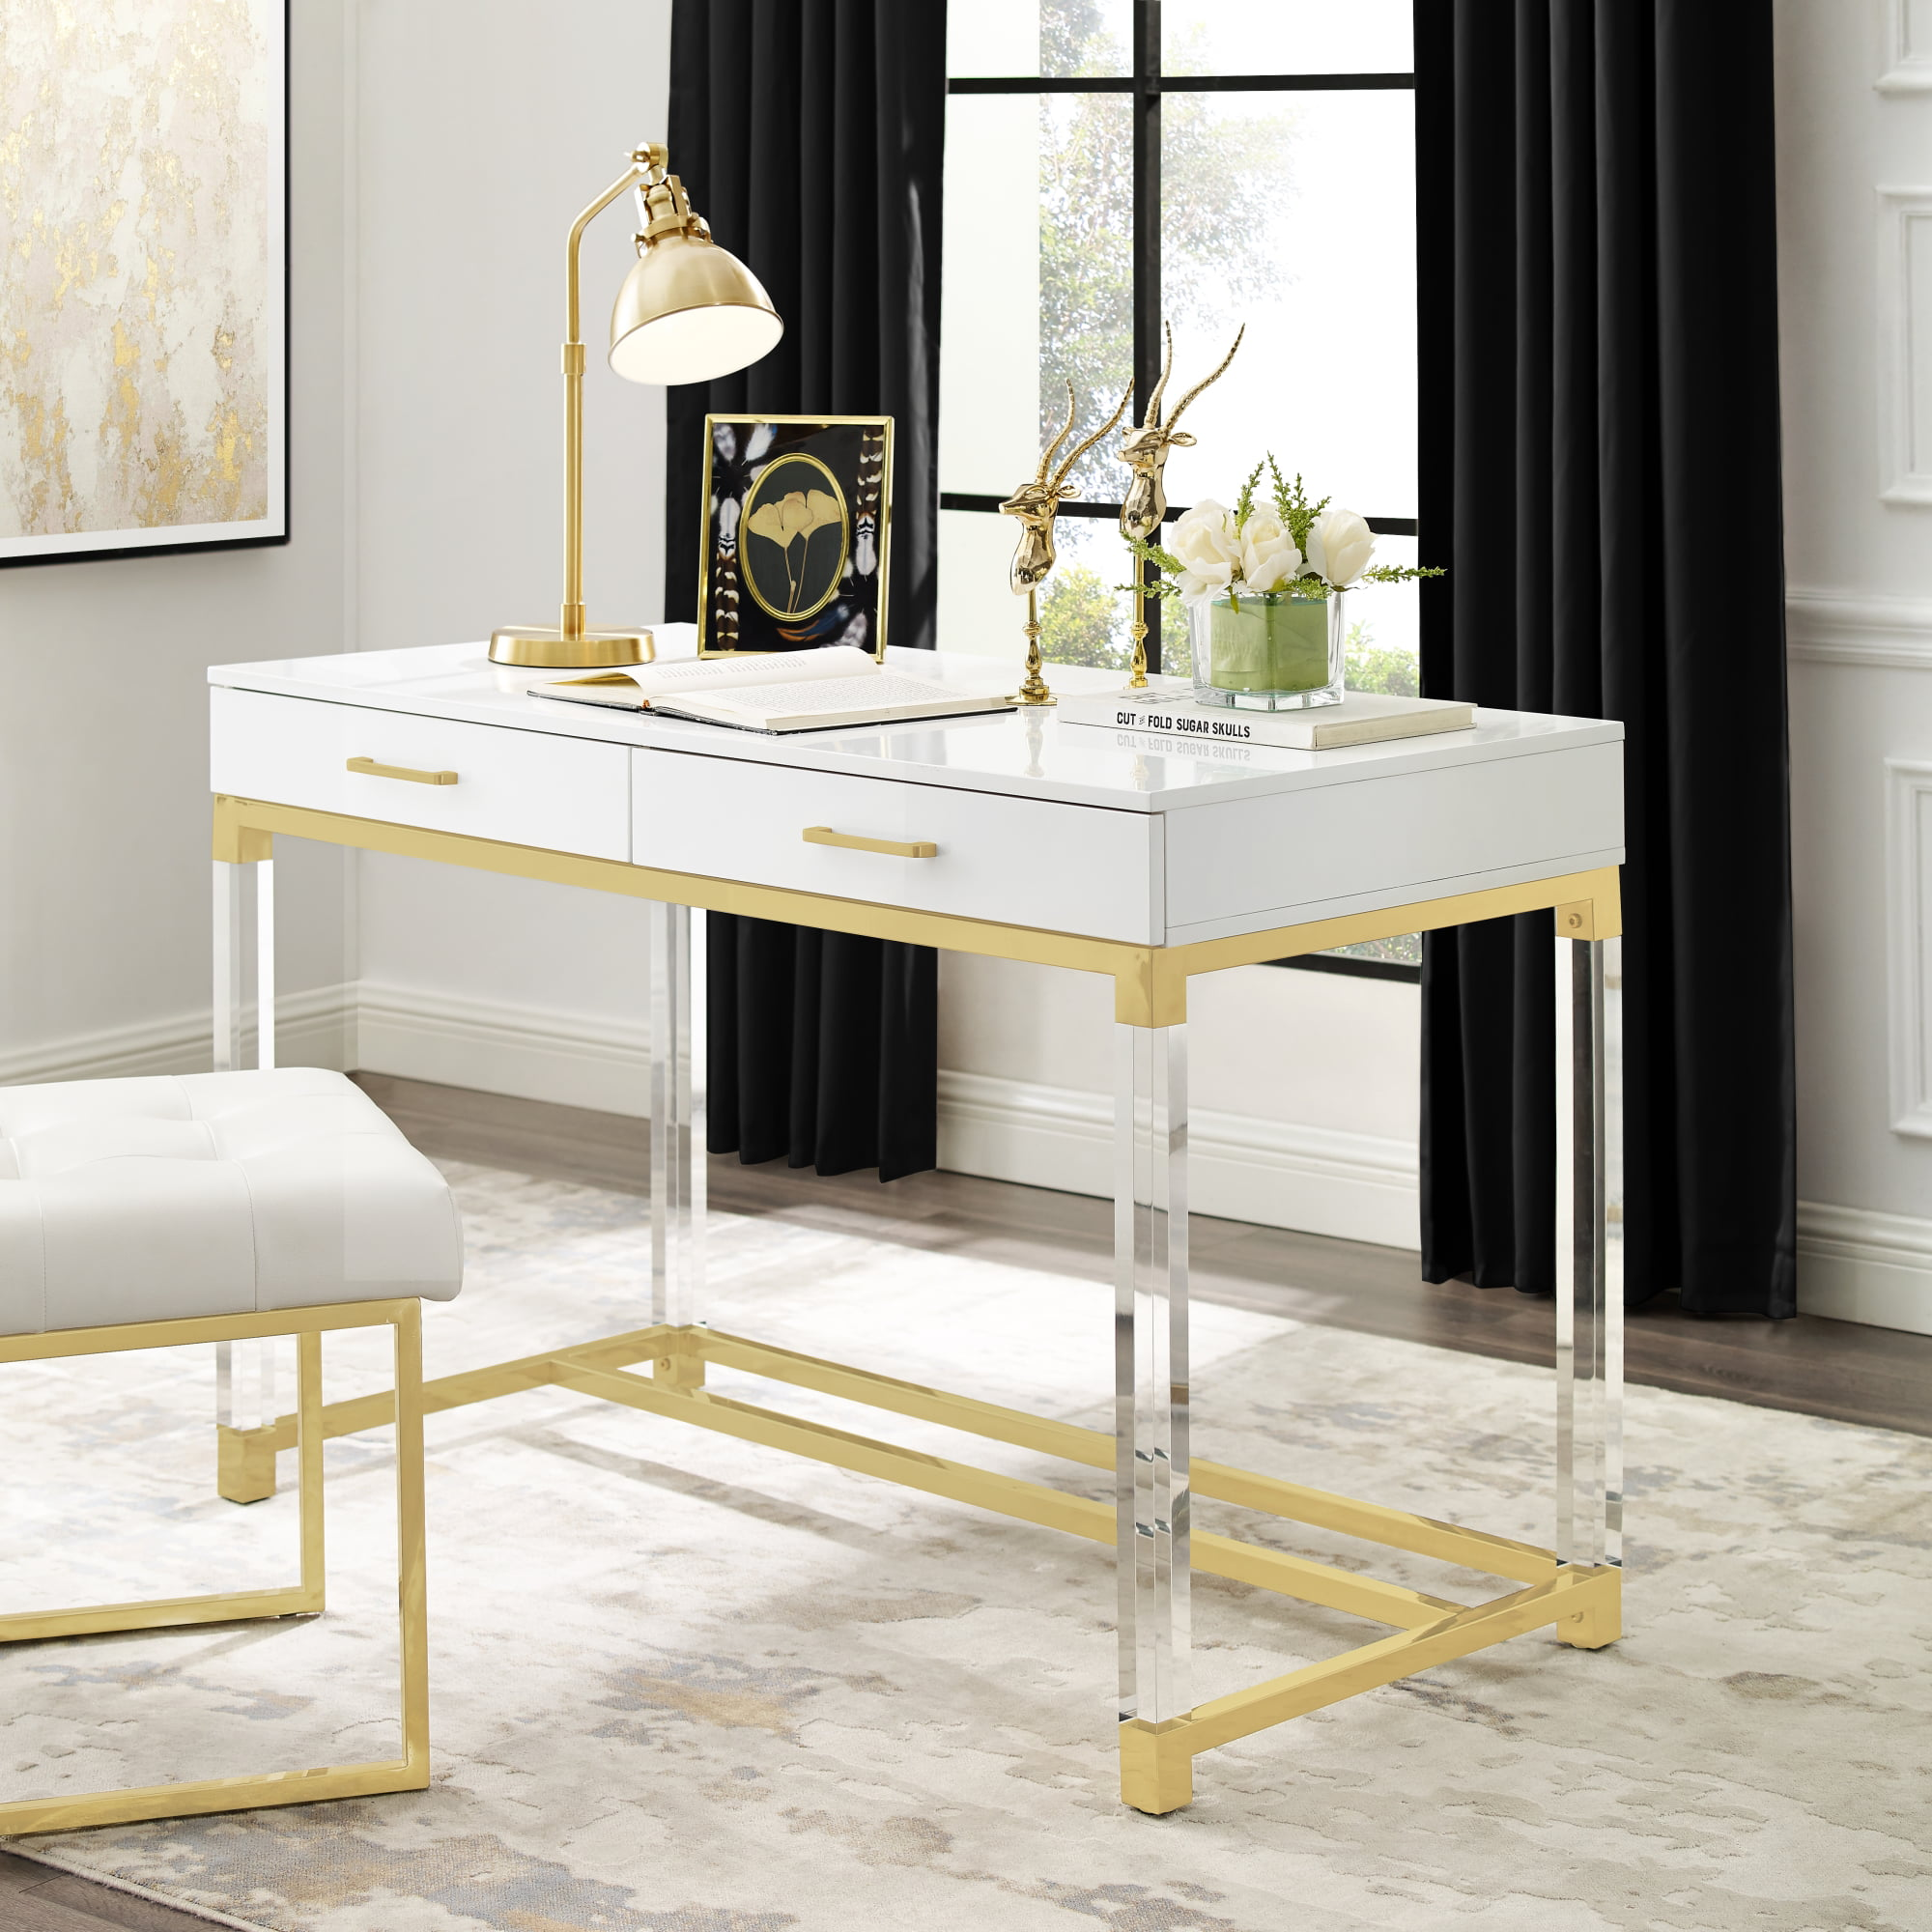 Alena White Writing Desk - 2 Drawers | High Gloss | Acrylic Legs | Gold Stainless Steel Base ...